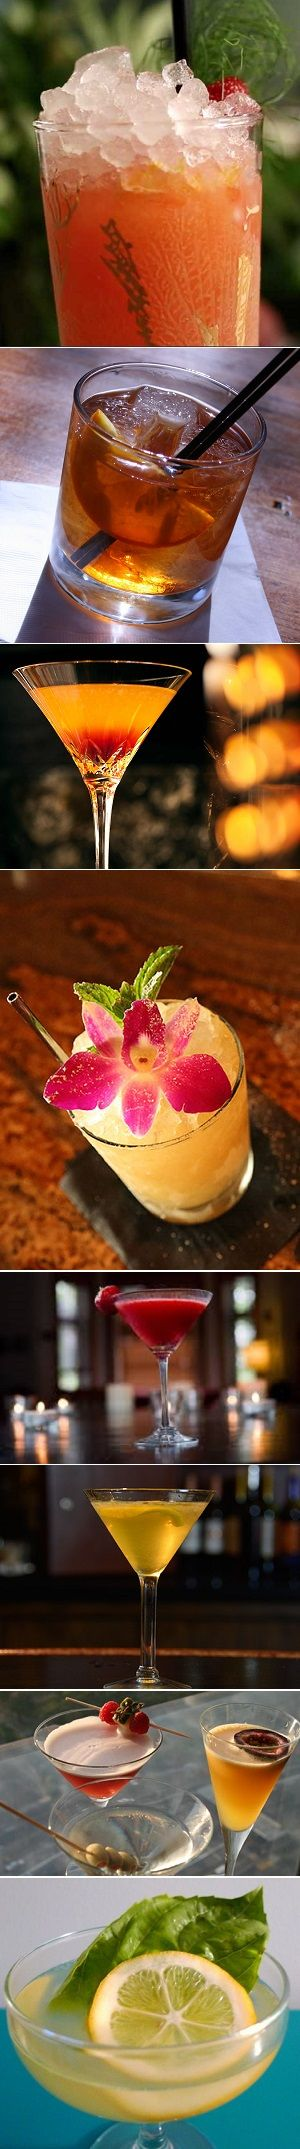 10 Famous Bartender Recipes